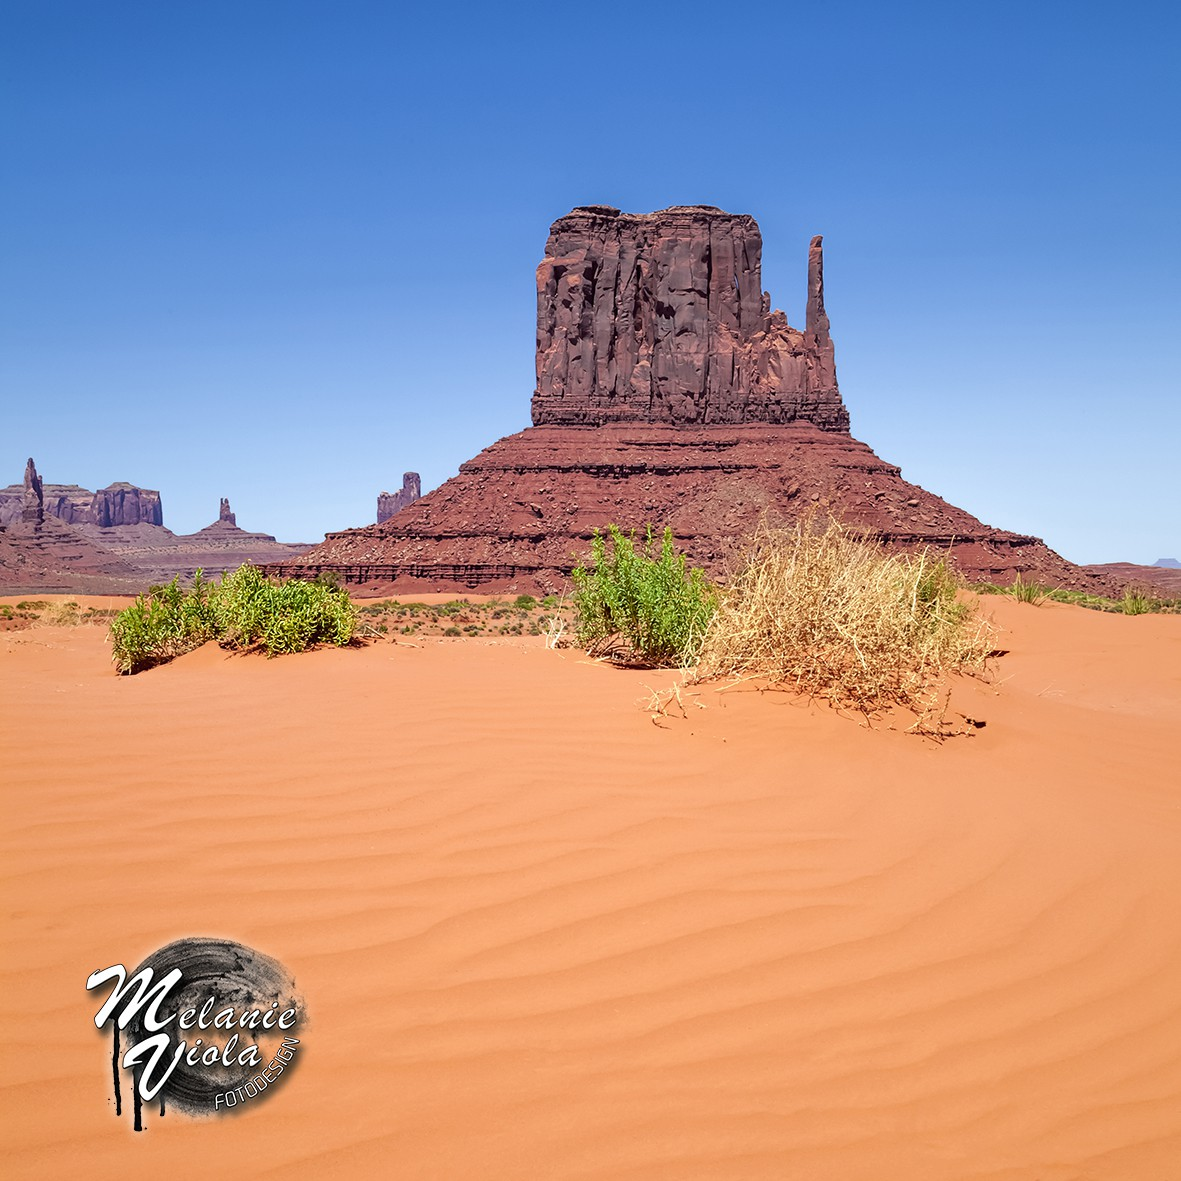 USA Monument Valley III | Posterlounge Onlineshop